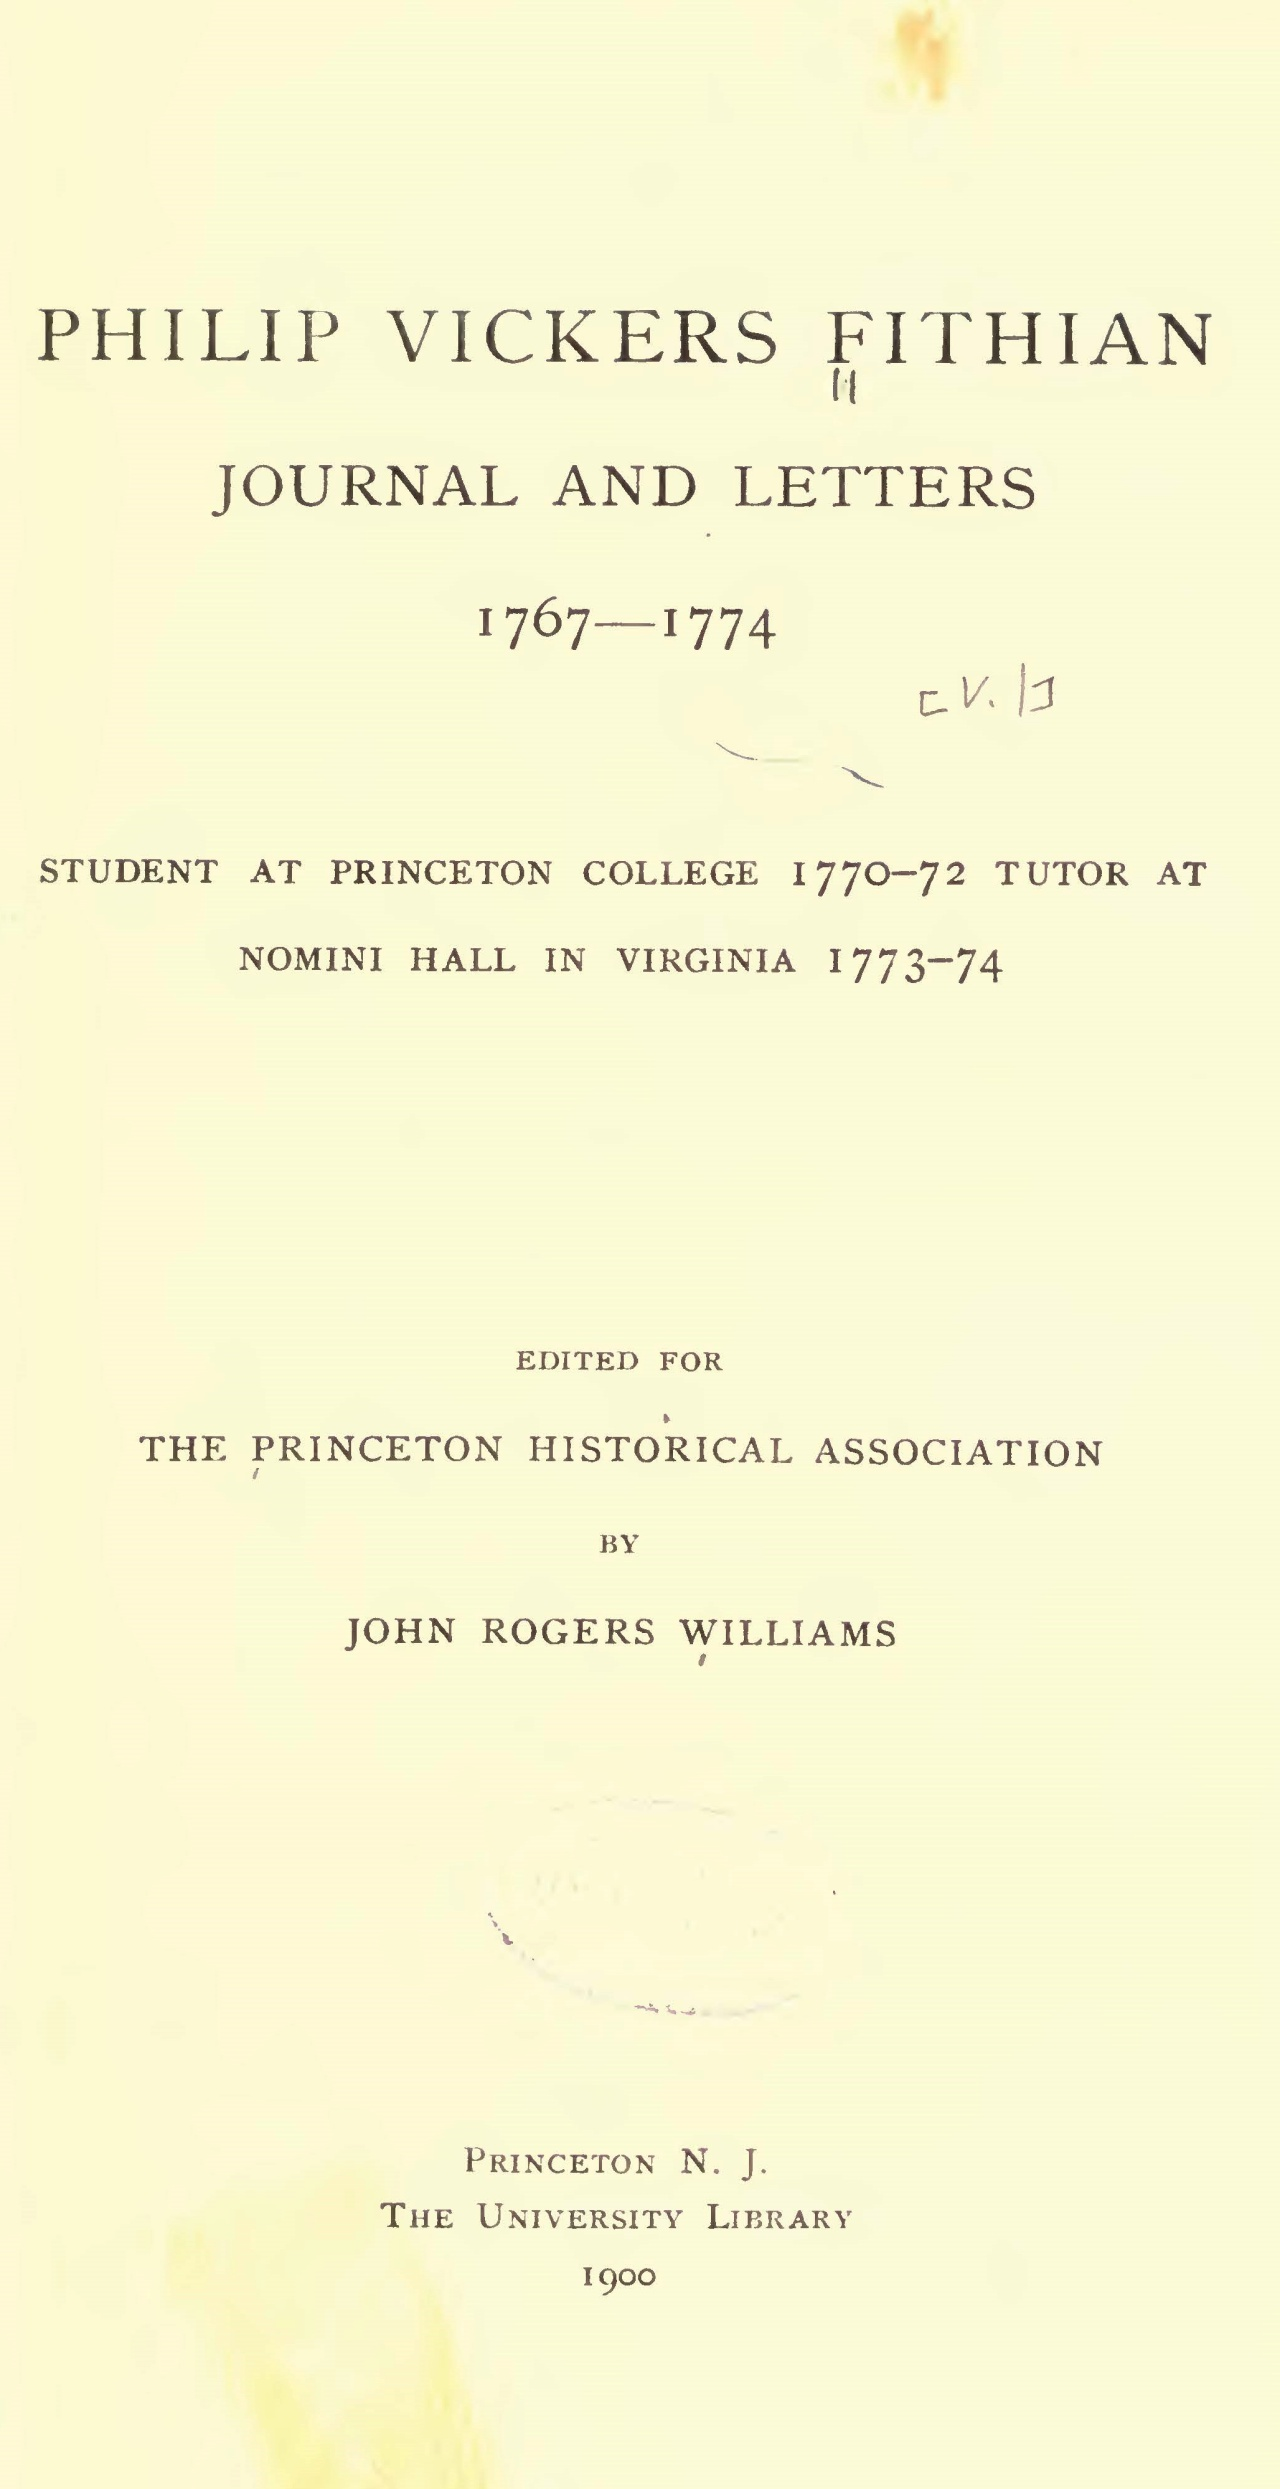 Fithian, Philip Vickers, Journal and Letters Title Page.jpg